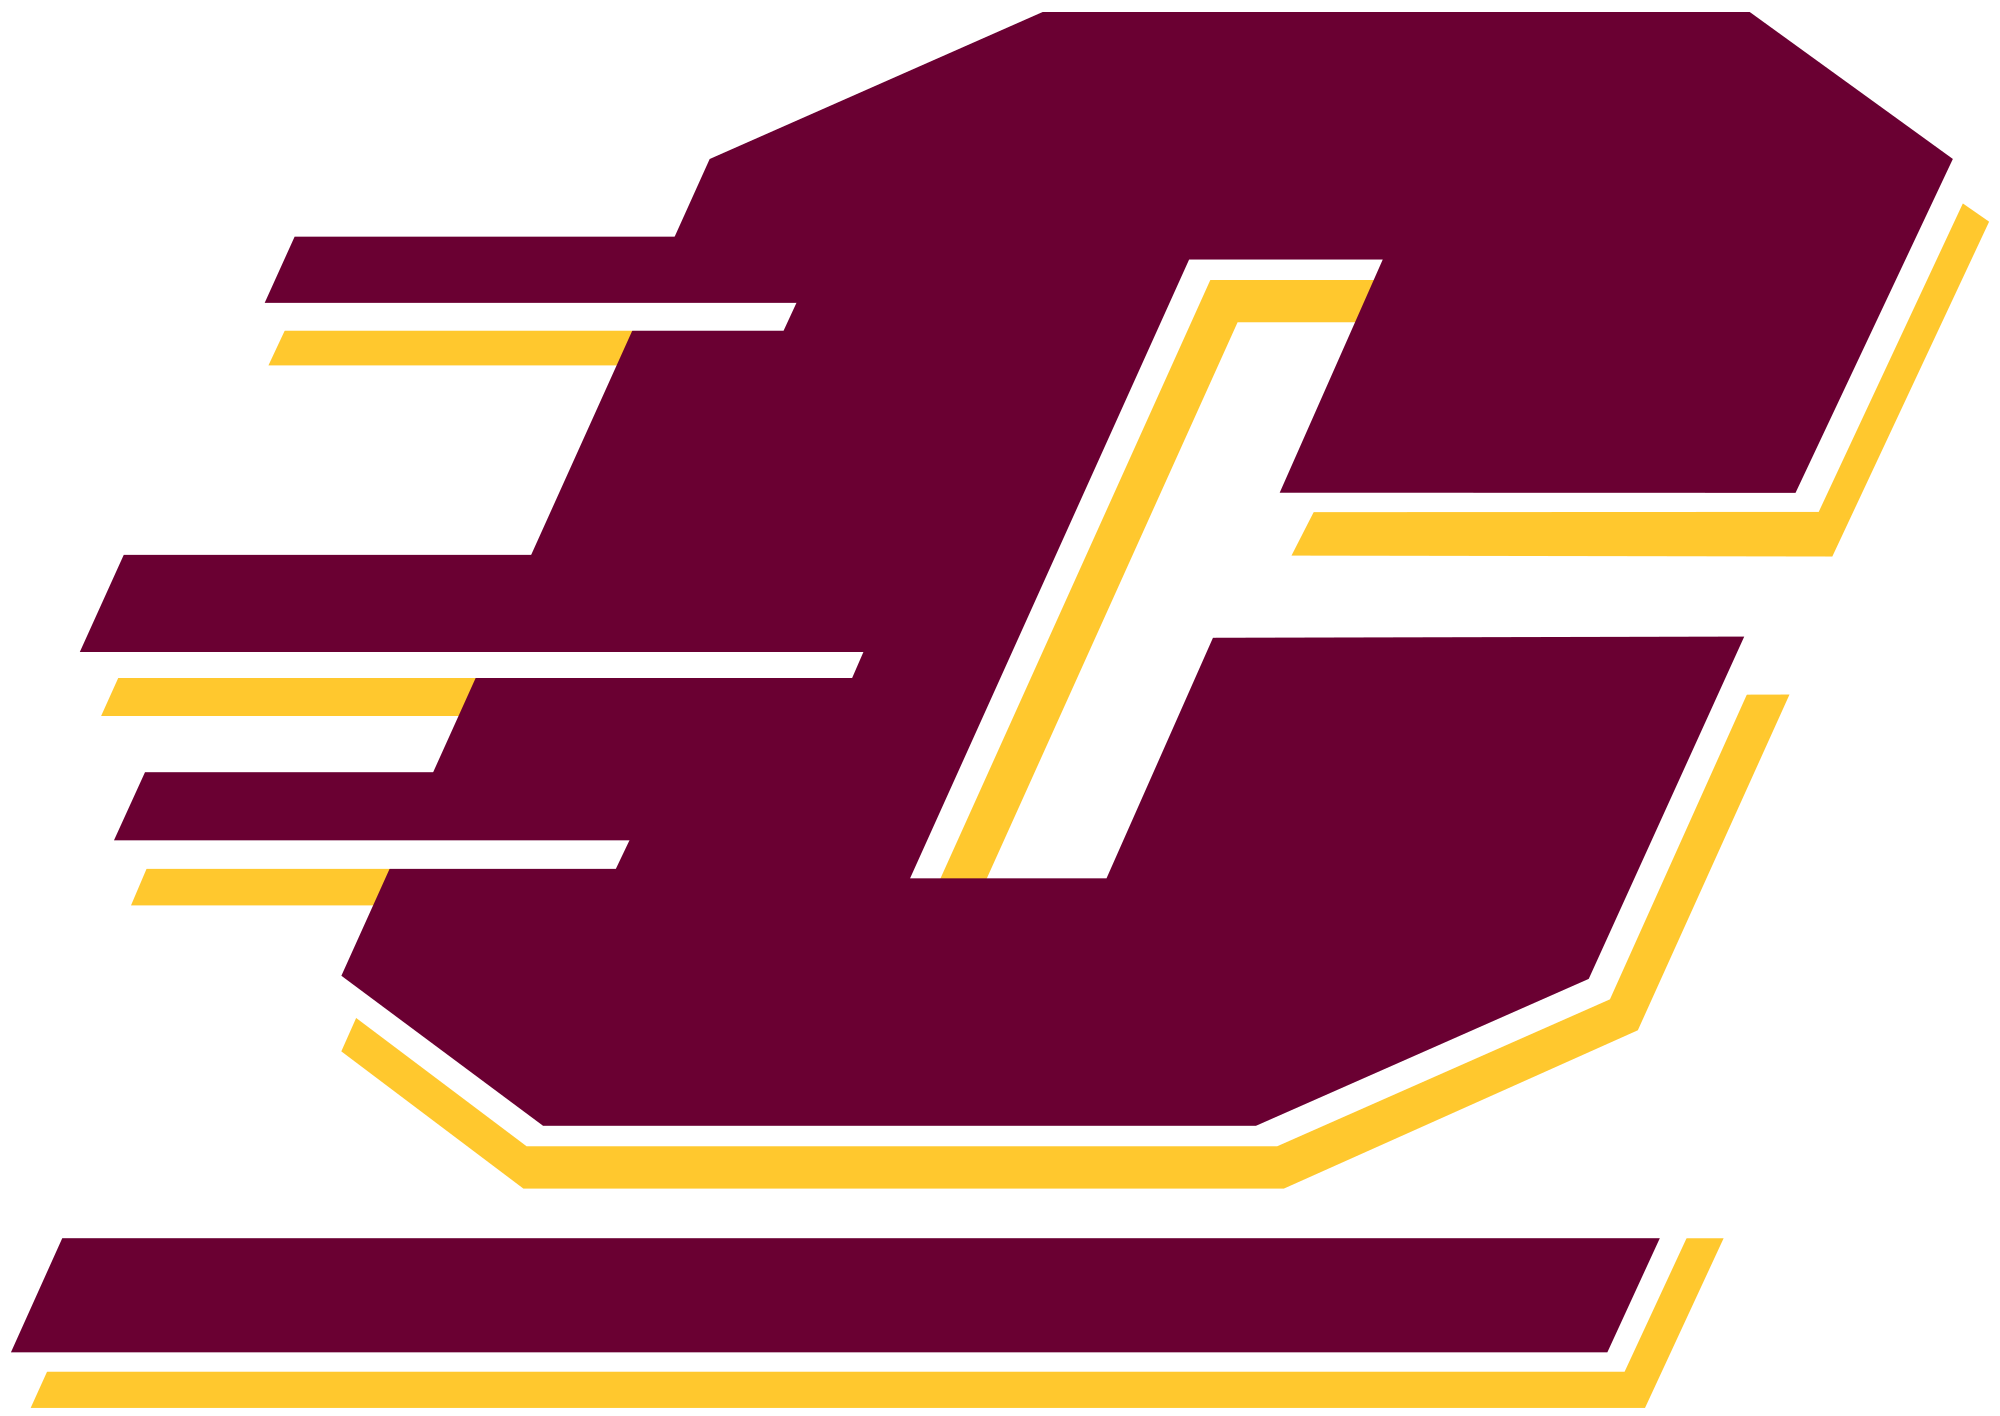 Michigan logo png. File central chippewas svg